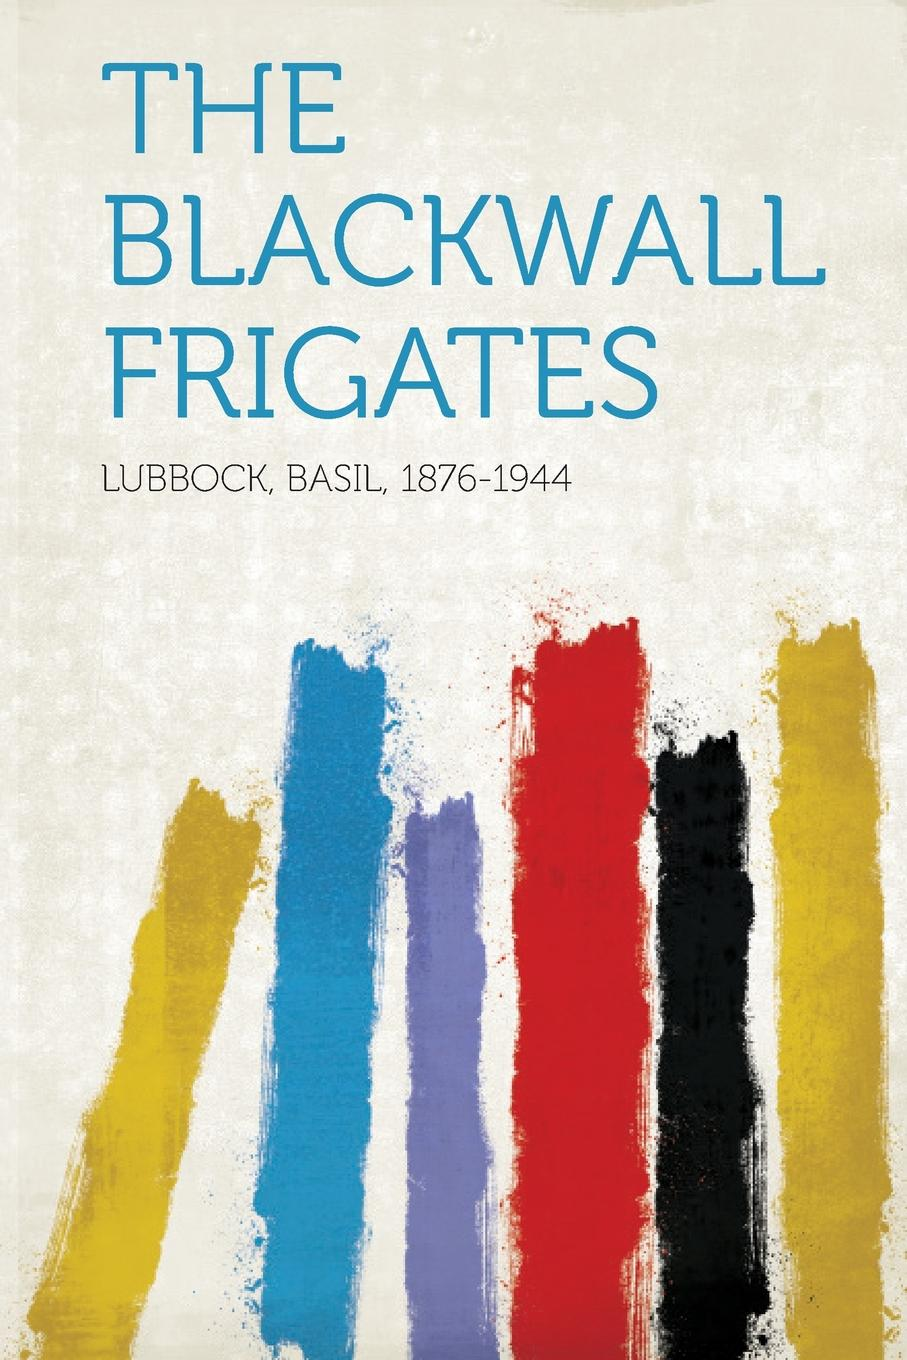 Lubbock Basil 1876-1944 The Blackwall Frigates basil lubbock the blackwall frigates